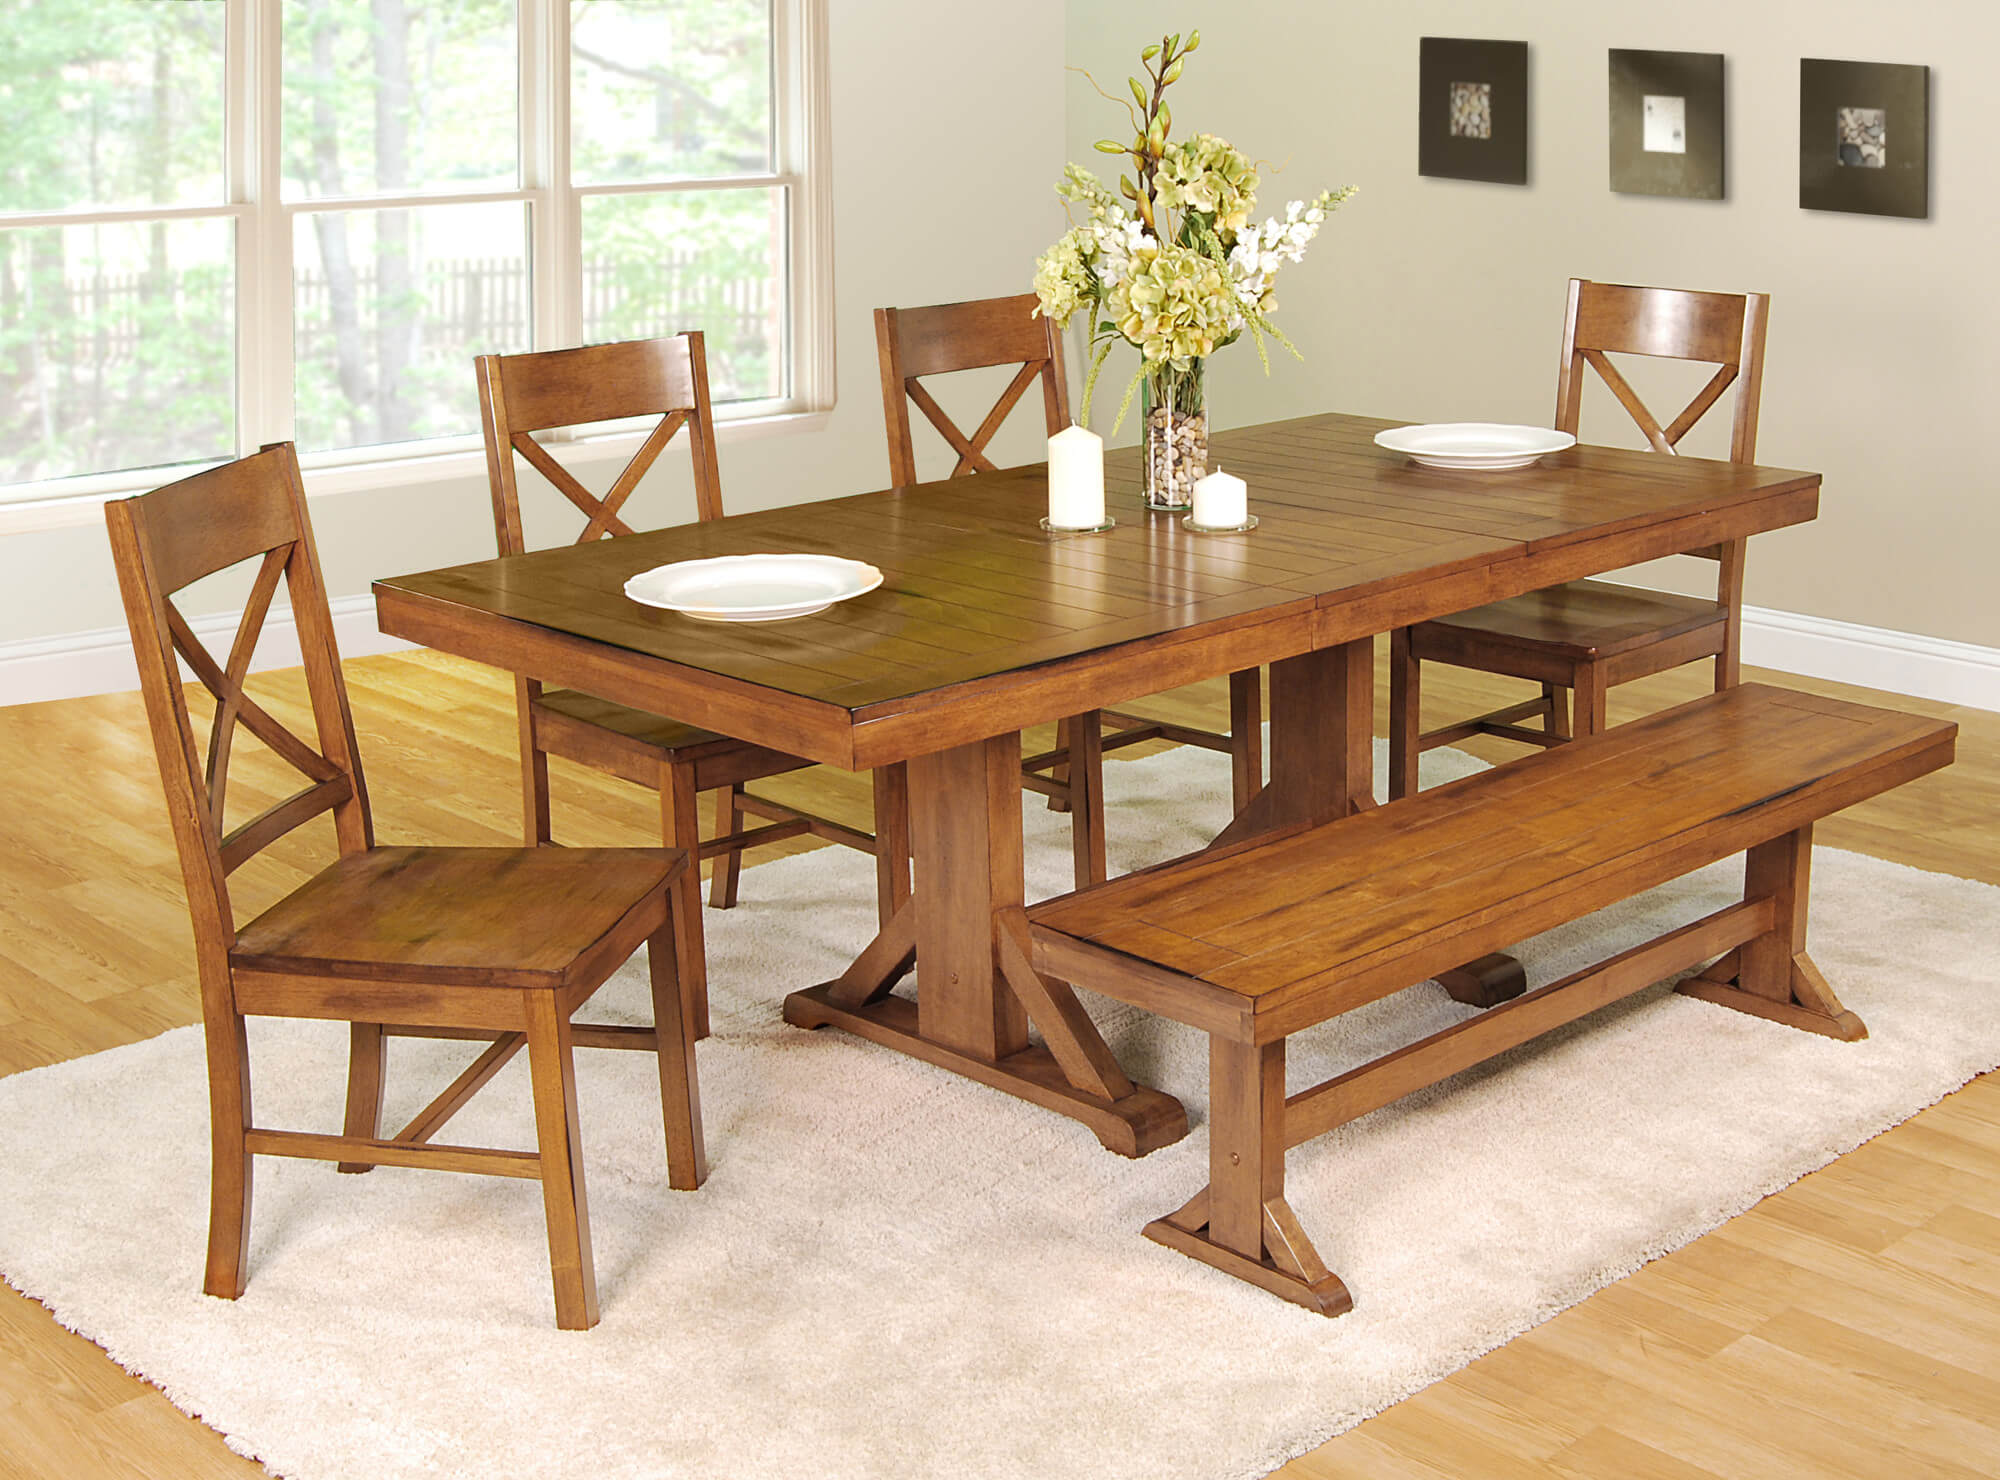 8way-dining-room-set-with-bench